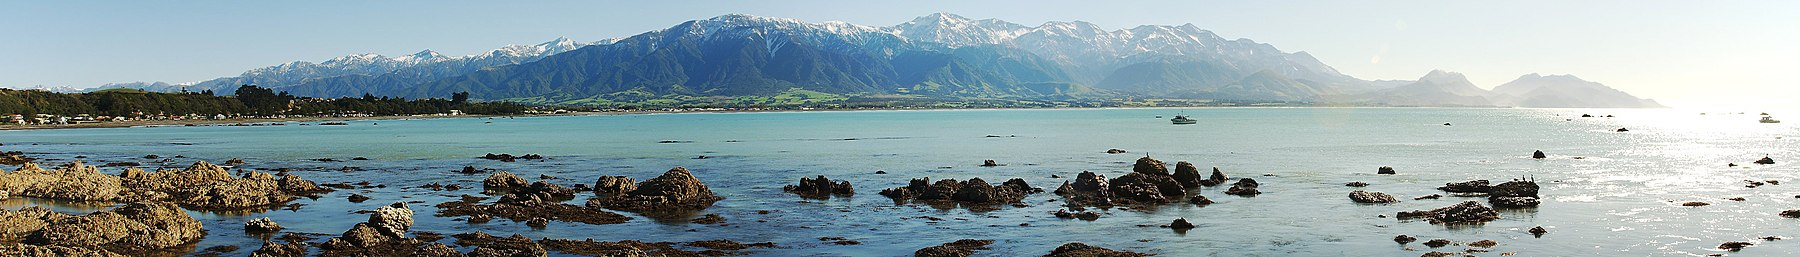 A panorama of the Seaward Kaikouras from Kaikoura, New Zealand